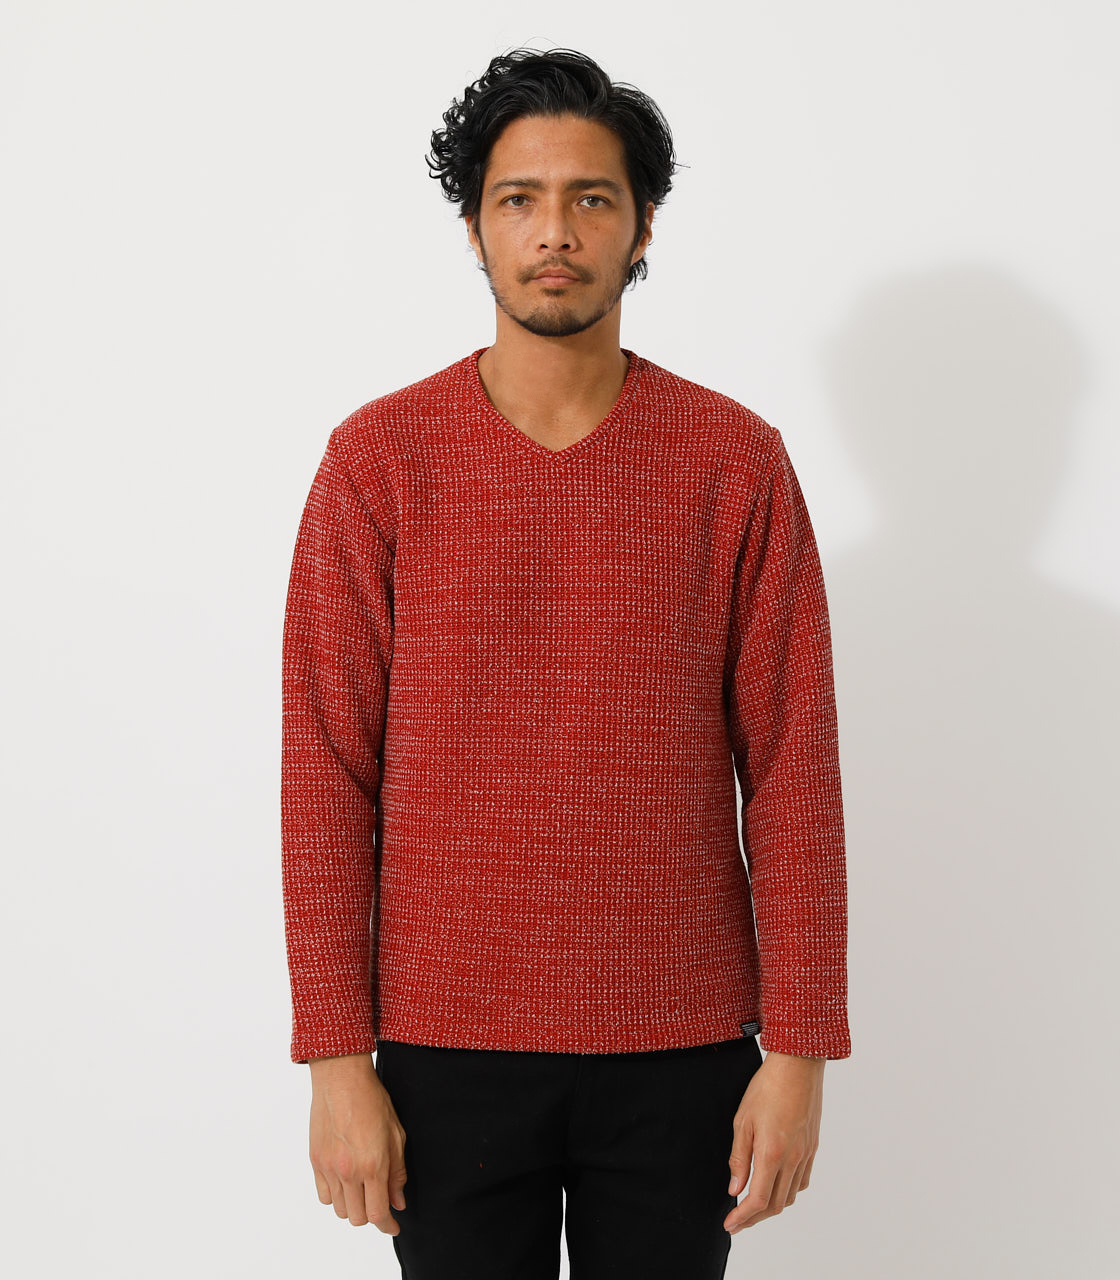 BRUSHED WAFFLE V/N LONG TEE/ブラッシュドワッフルVネックロングTシャツ 詳細画像 柄RED 4